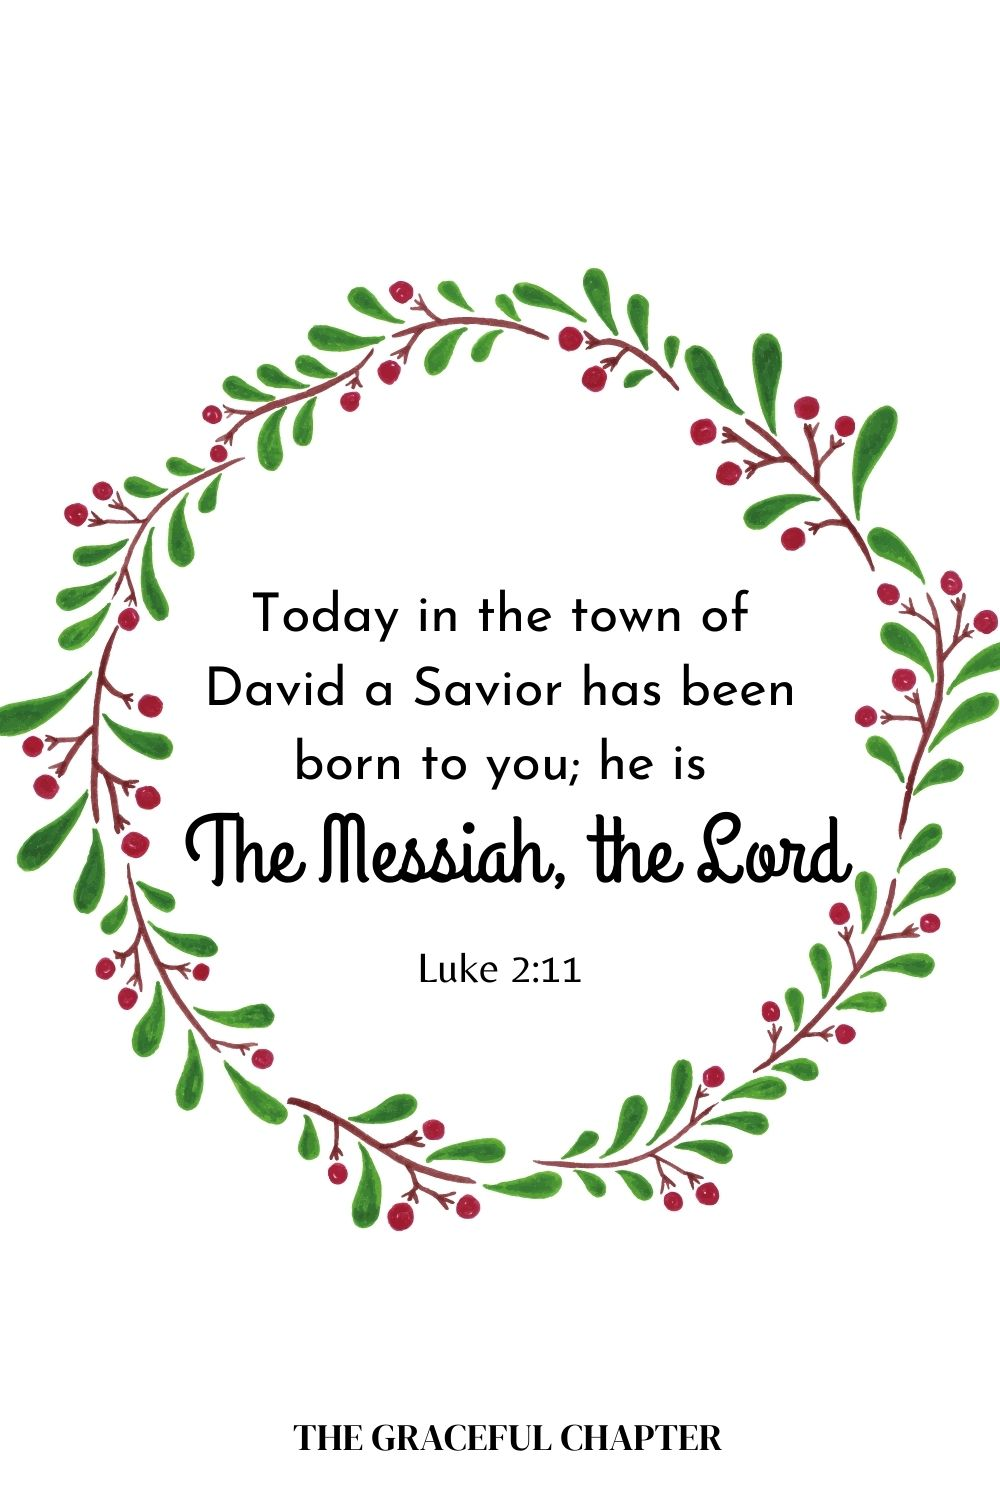 Bible verses about the birth of Jesus Christ. Christmas bible verses